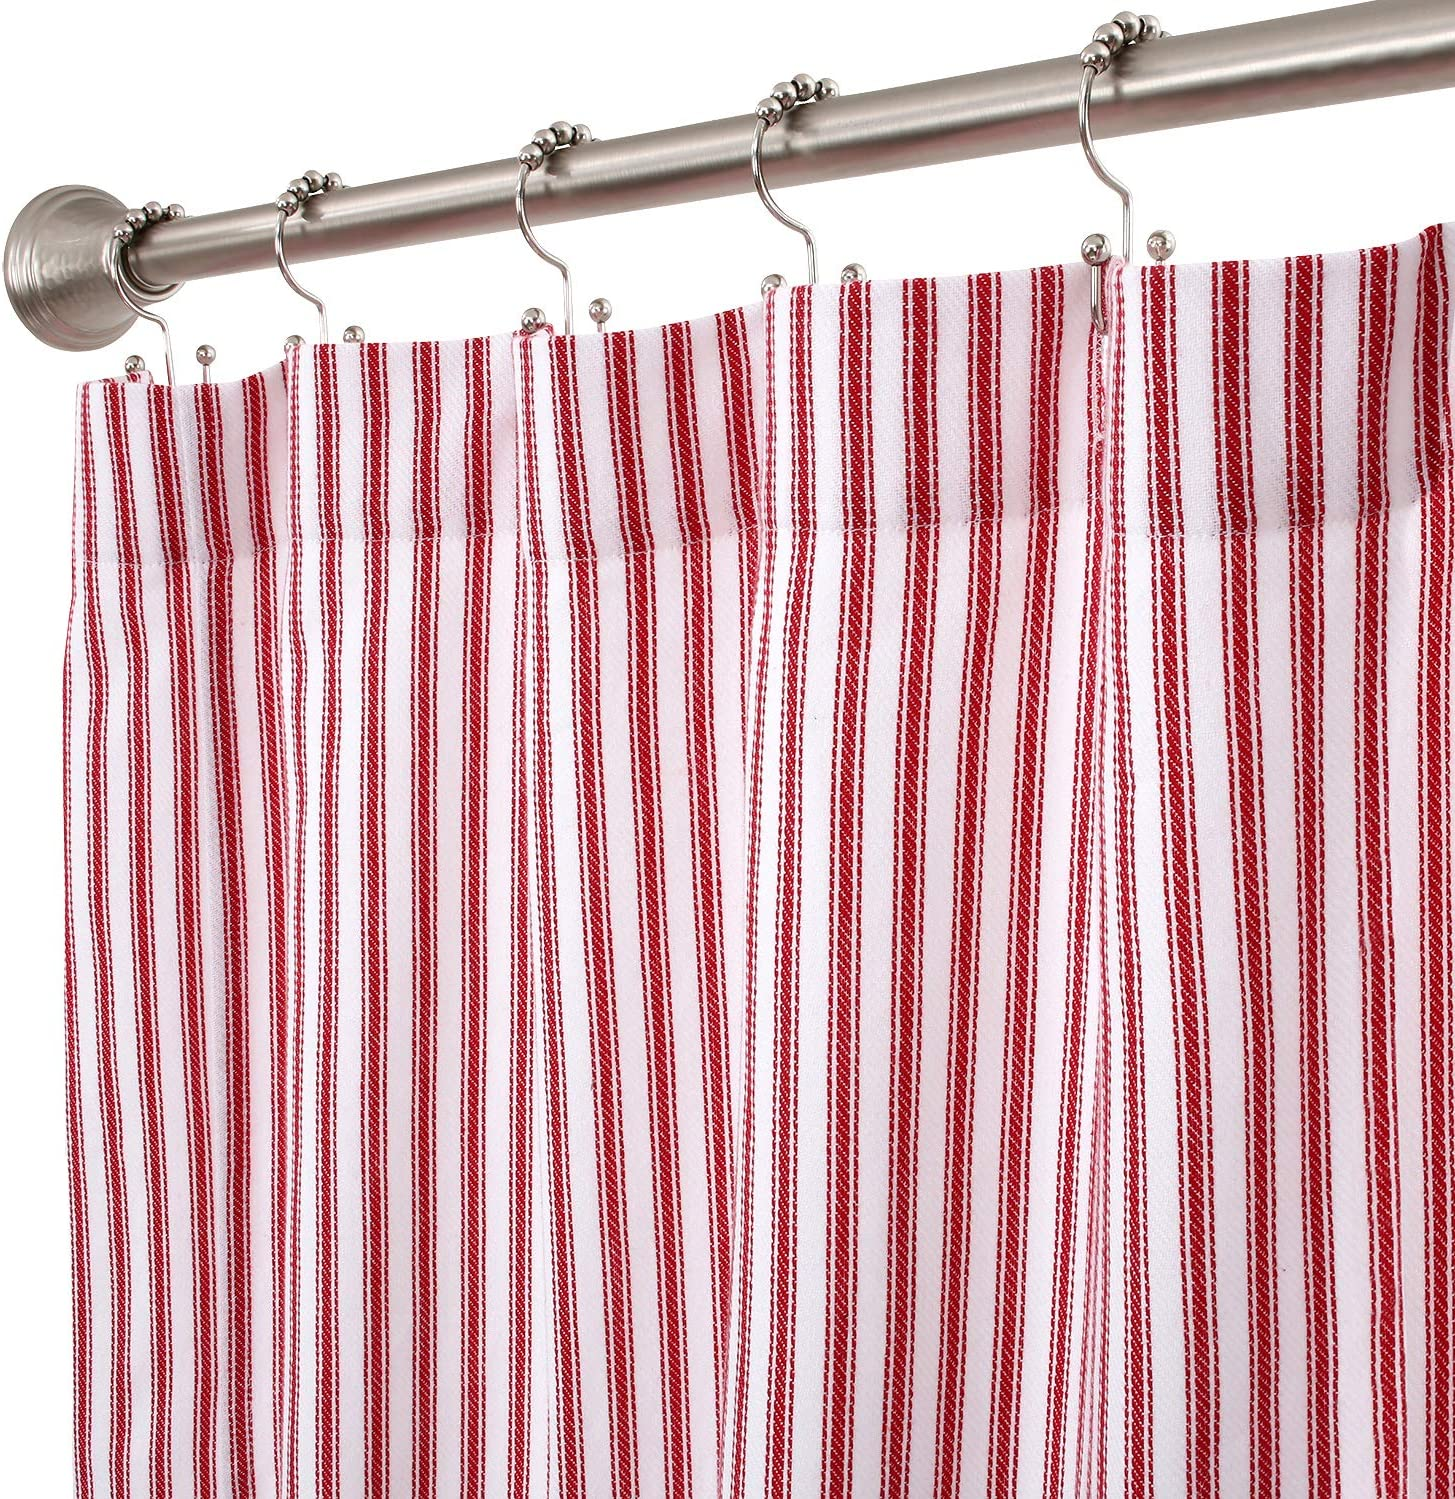 Cackleberry Home Red and White Ticking Stripe Woven Cotton Shower Curtain Extra Long 72 Inches W x 84 Inches L